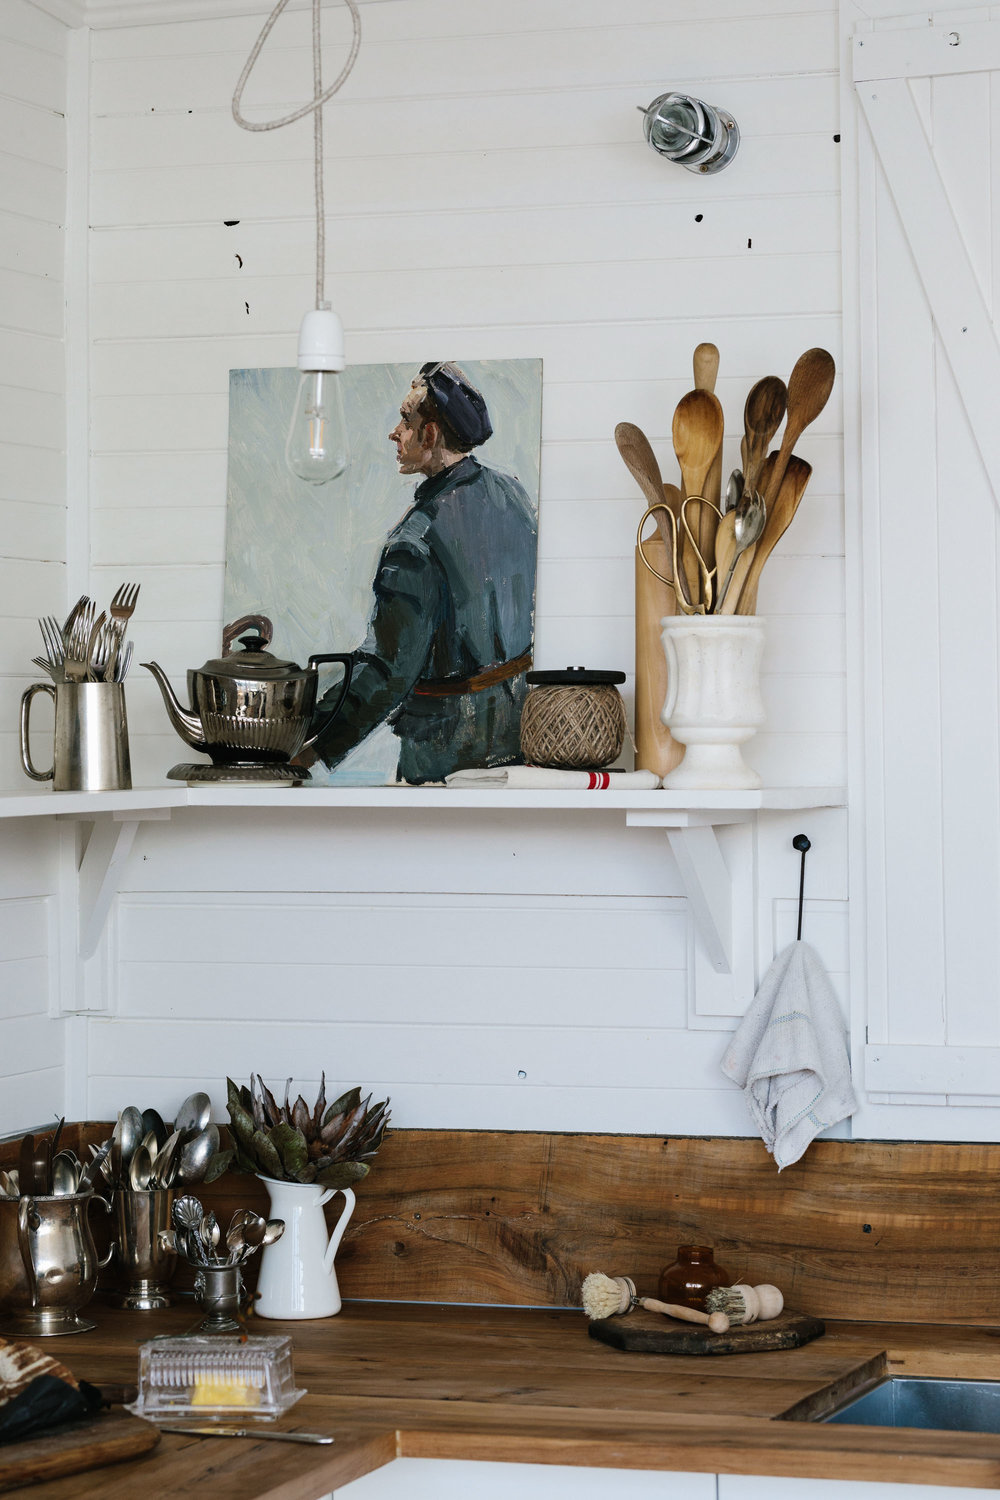 Marnie Hawson, Melbourne interior and lifestyle photography, for Captain's Rest (Strahan, Tasmania) and Country Style magazine